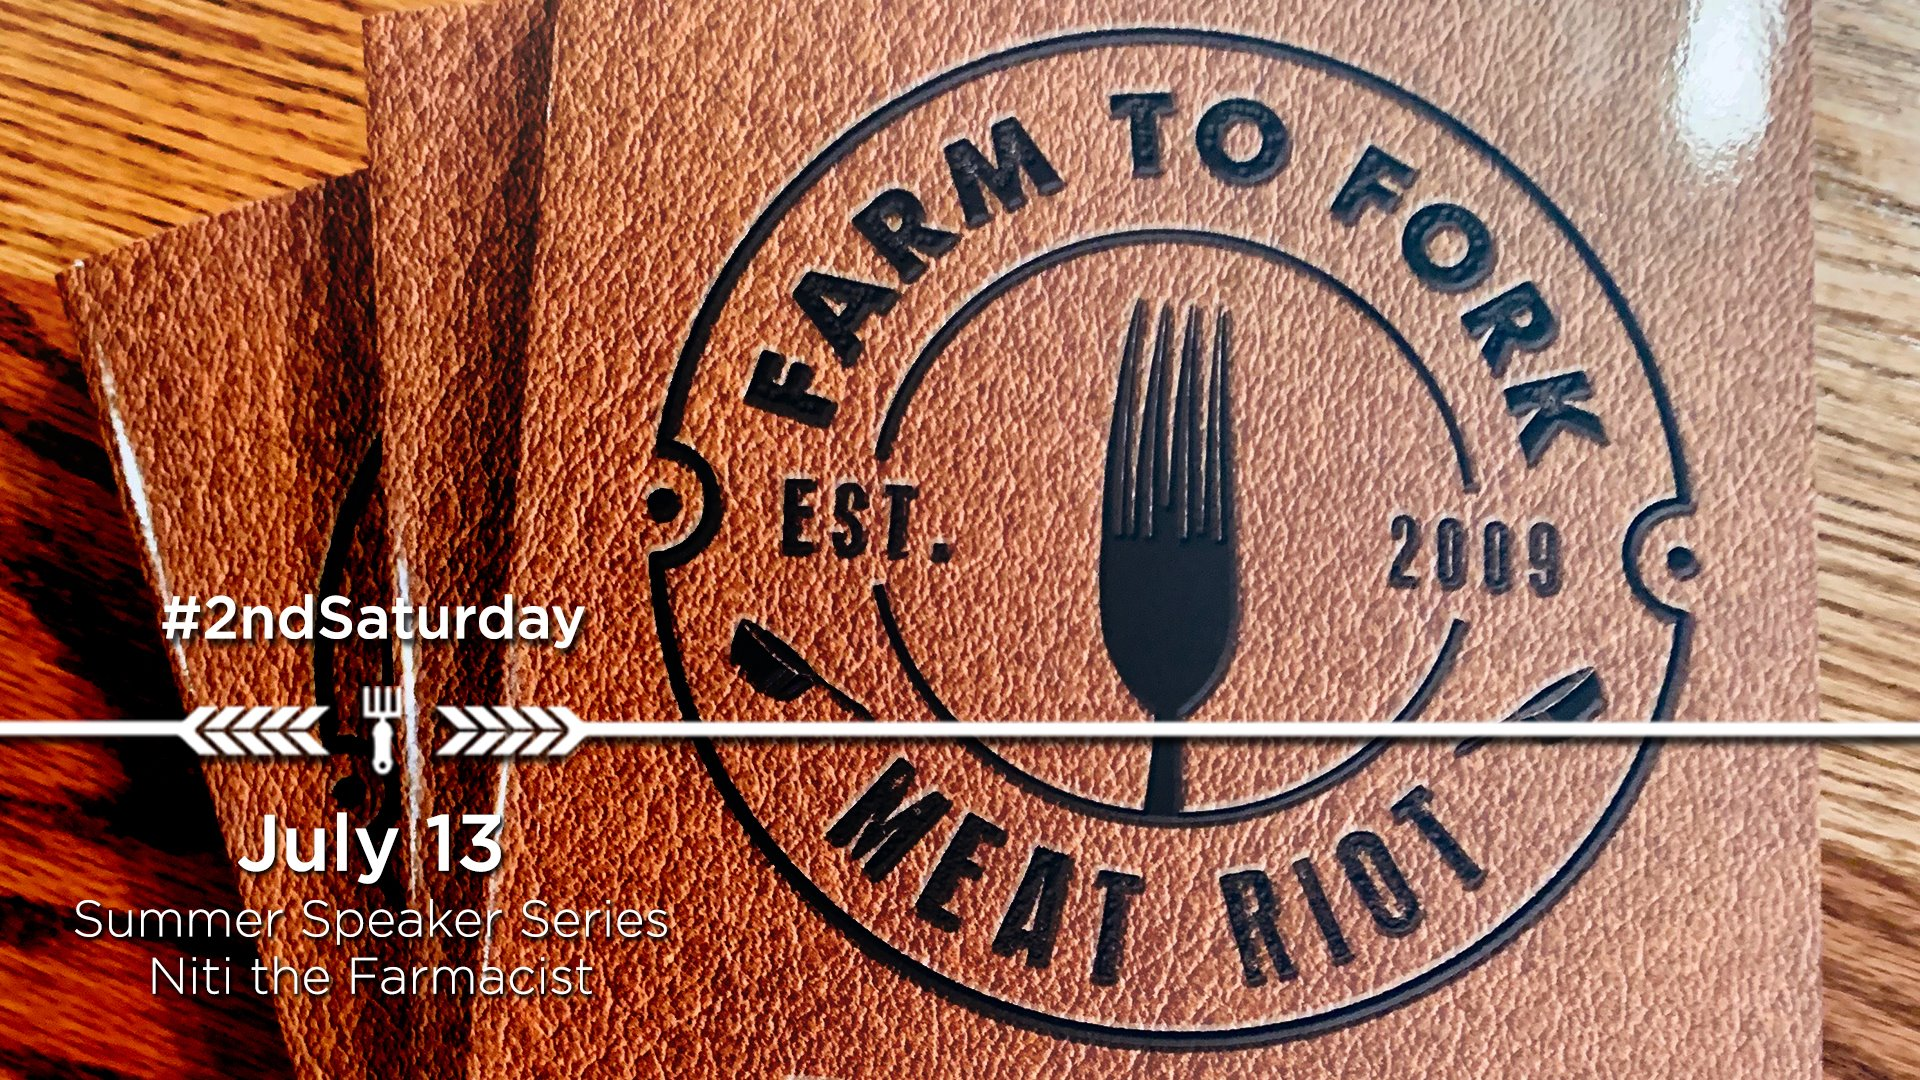 farm-to-fork-meat-riot.jpg